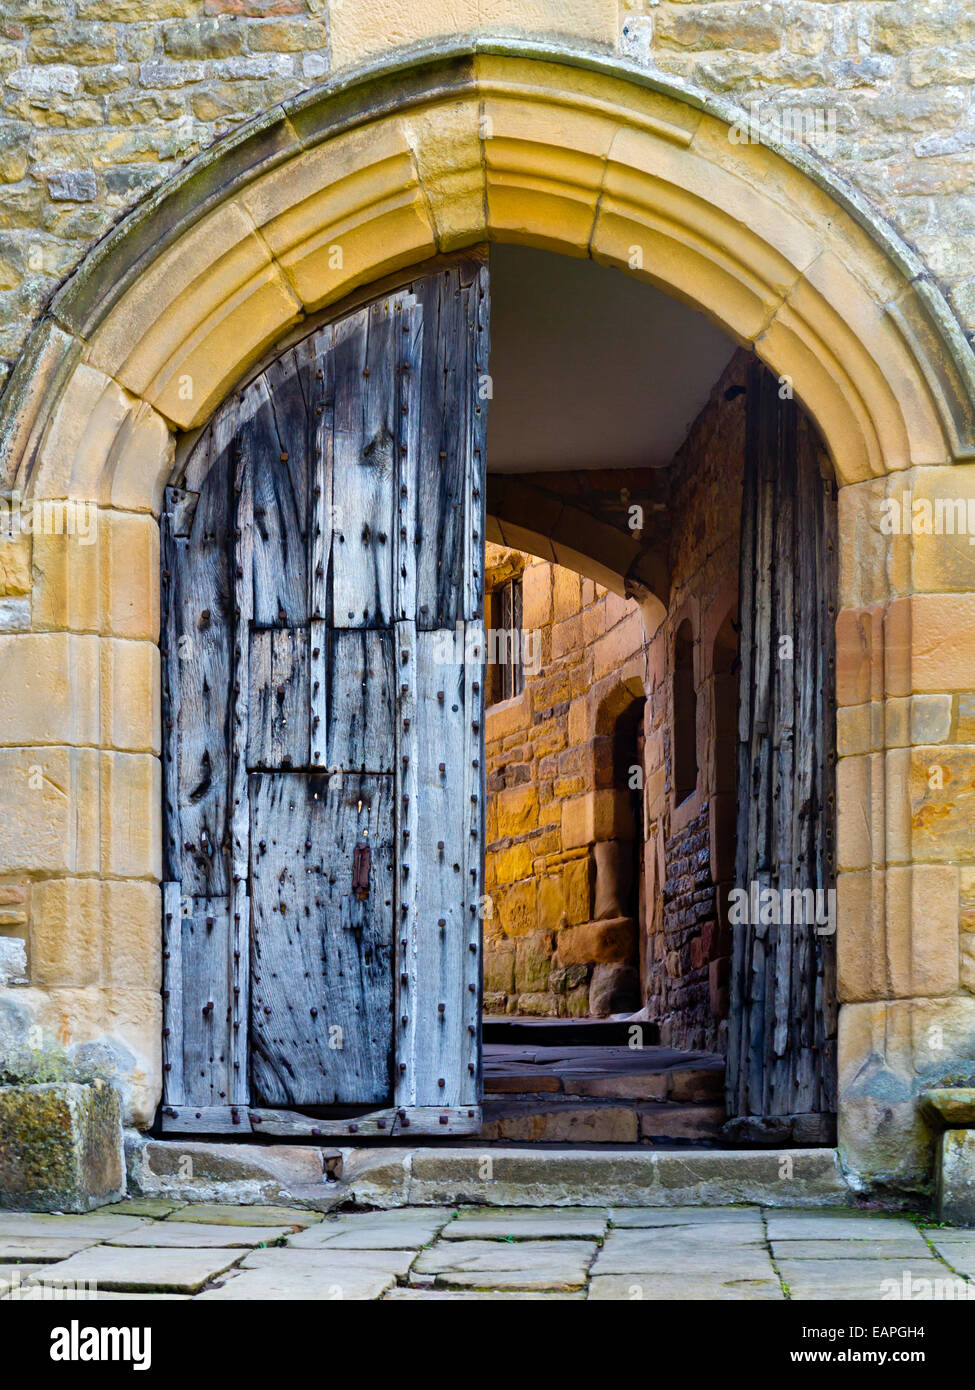 Wooden entrance door and archway into the inner courtyard at Haddon Hall near Bakewell Peak District National Park Derbyshire UK & Wooden entrance door and archway into the inner courtyard at Haddon ...